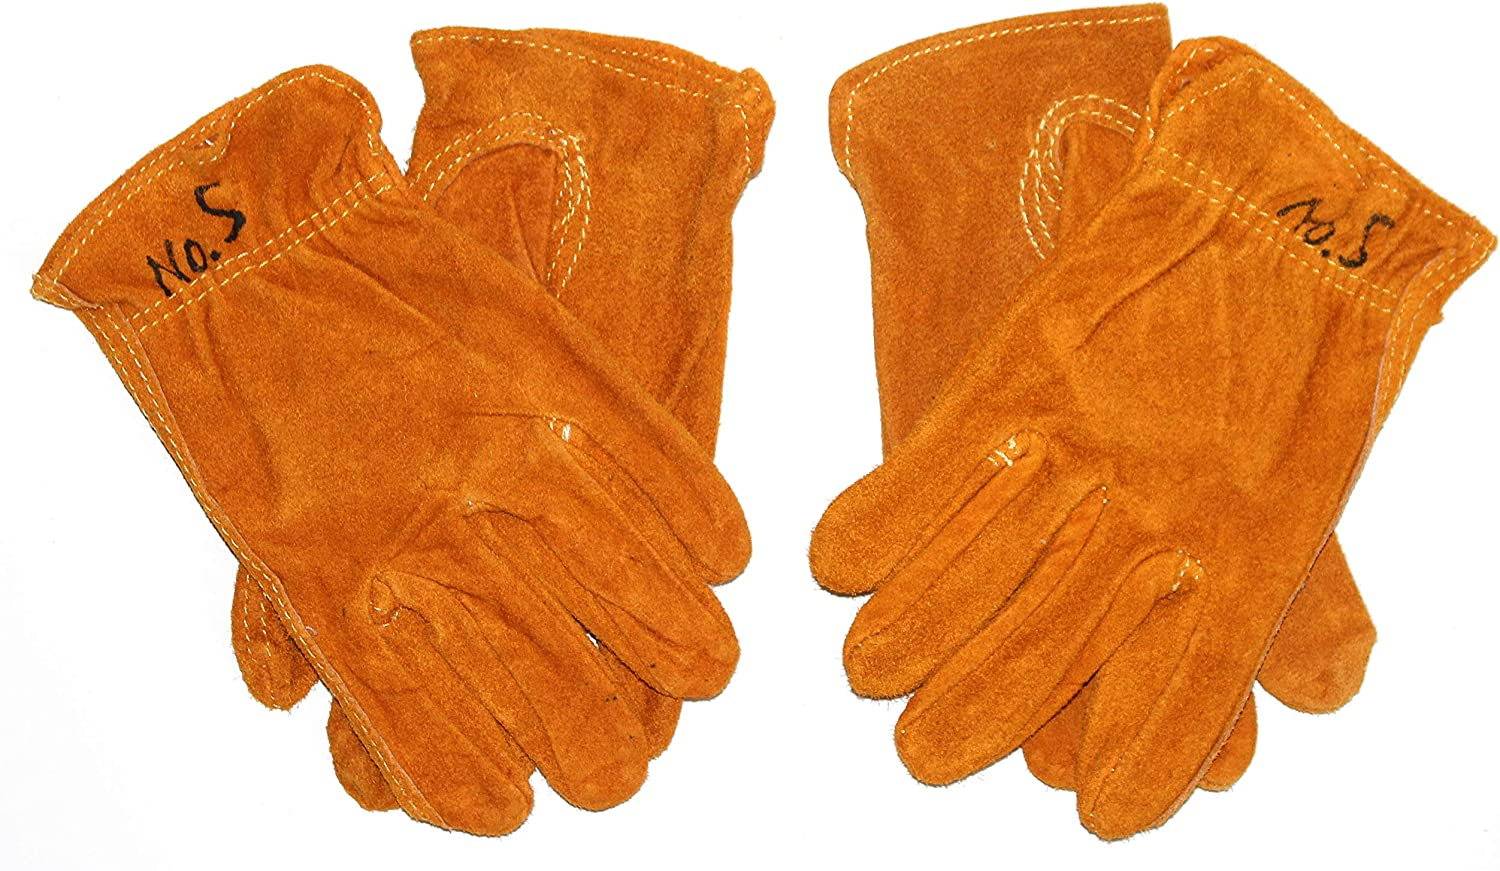 GnarPack No.5 Kids and Children Golden Suede Cowhide Leather Work and Garden Gloves. Hand Protection for Boys and Girls. Approximate Age Fitting 3-6 yrs (2)